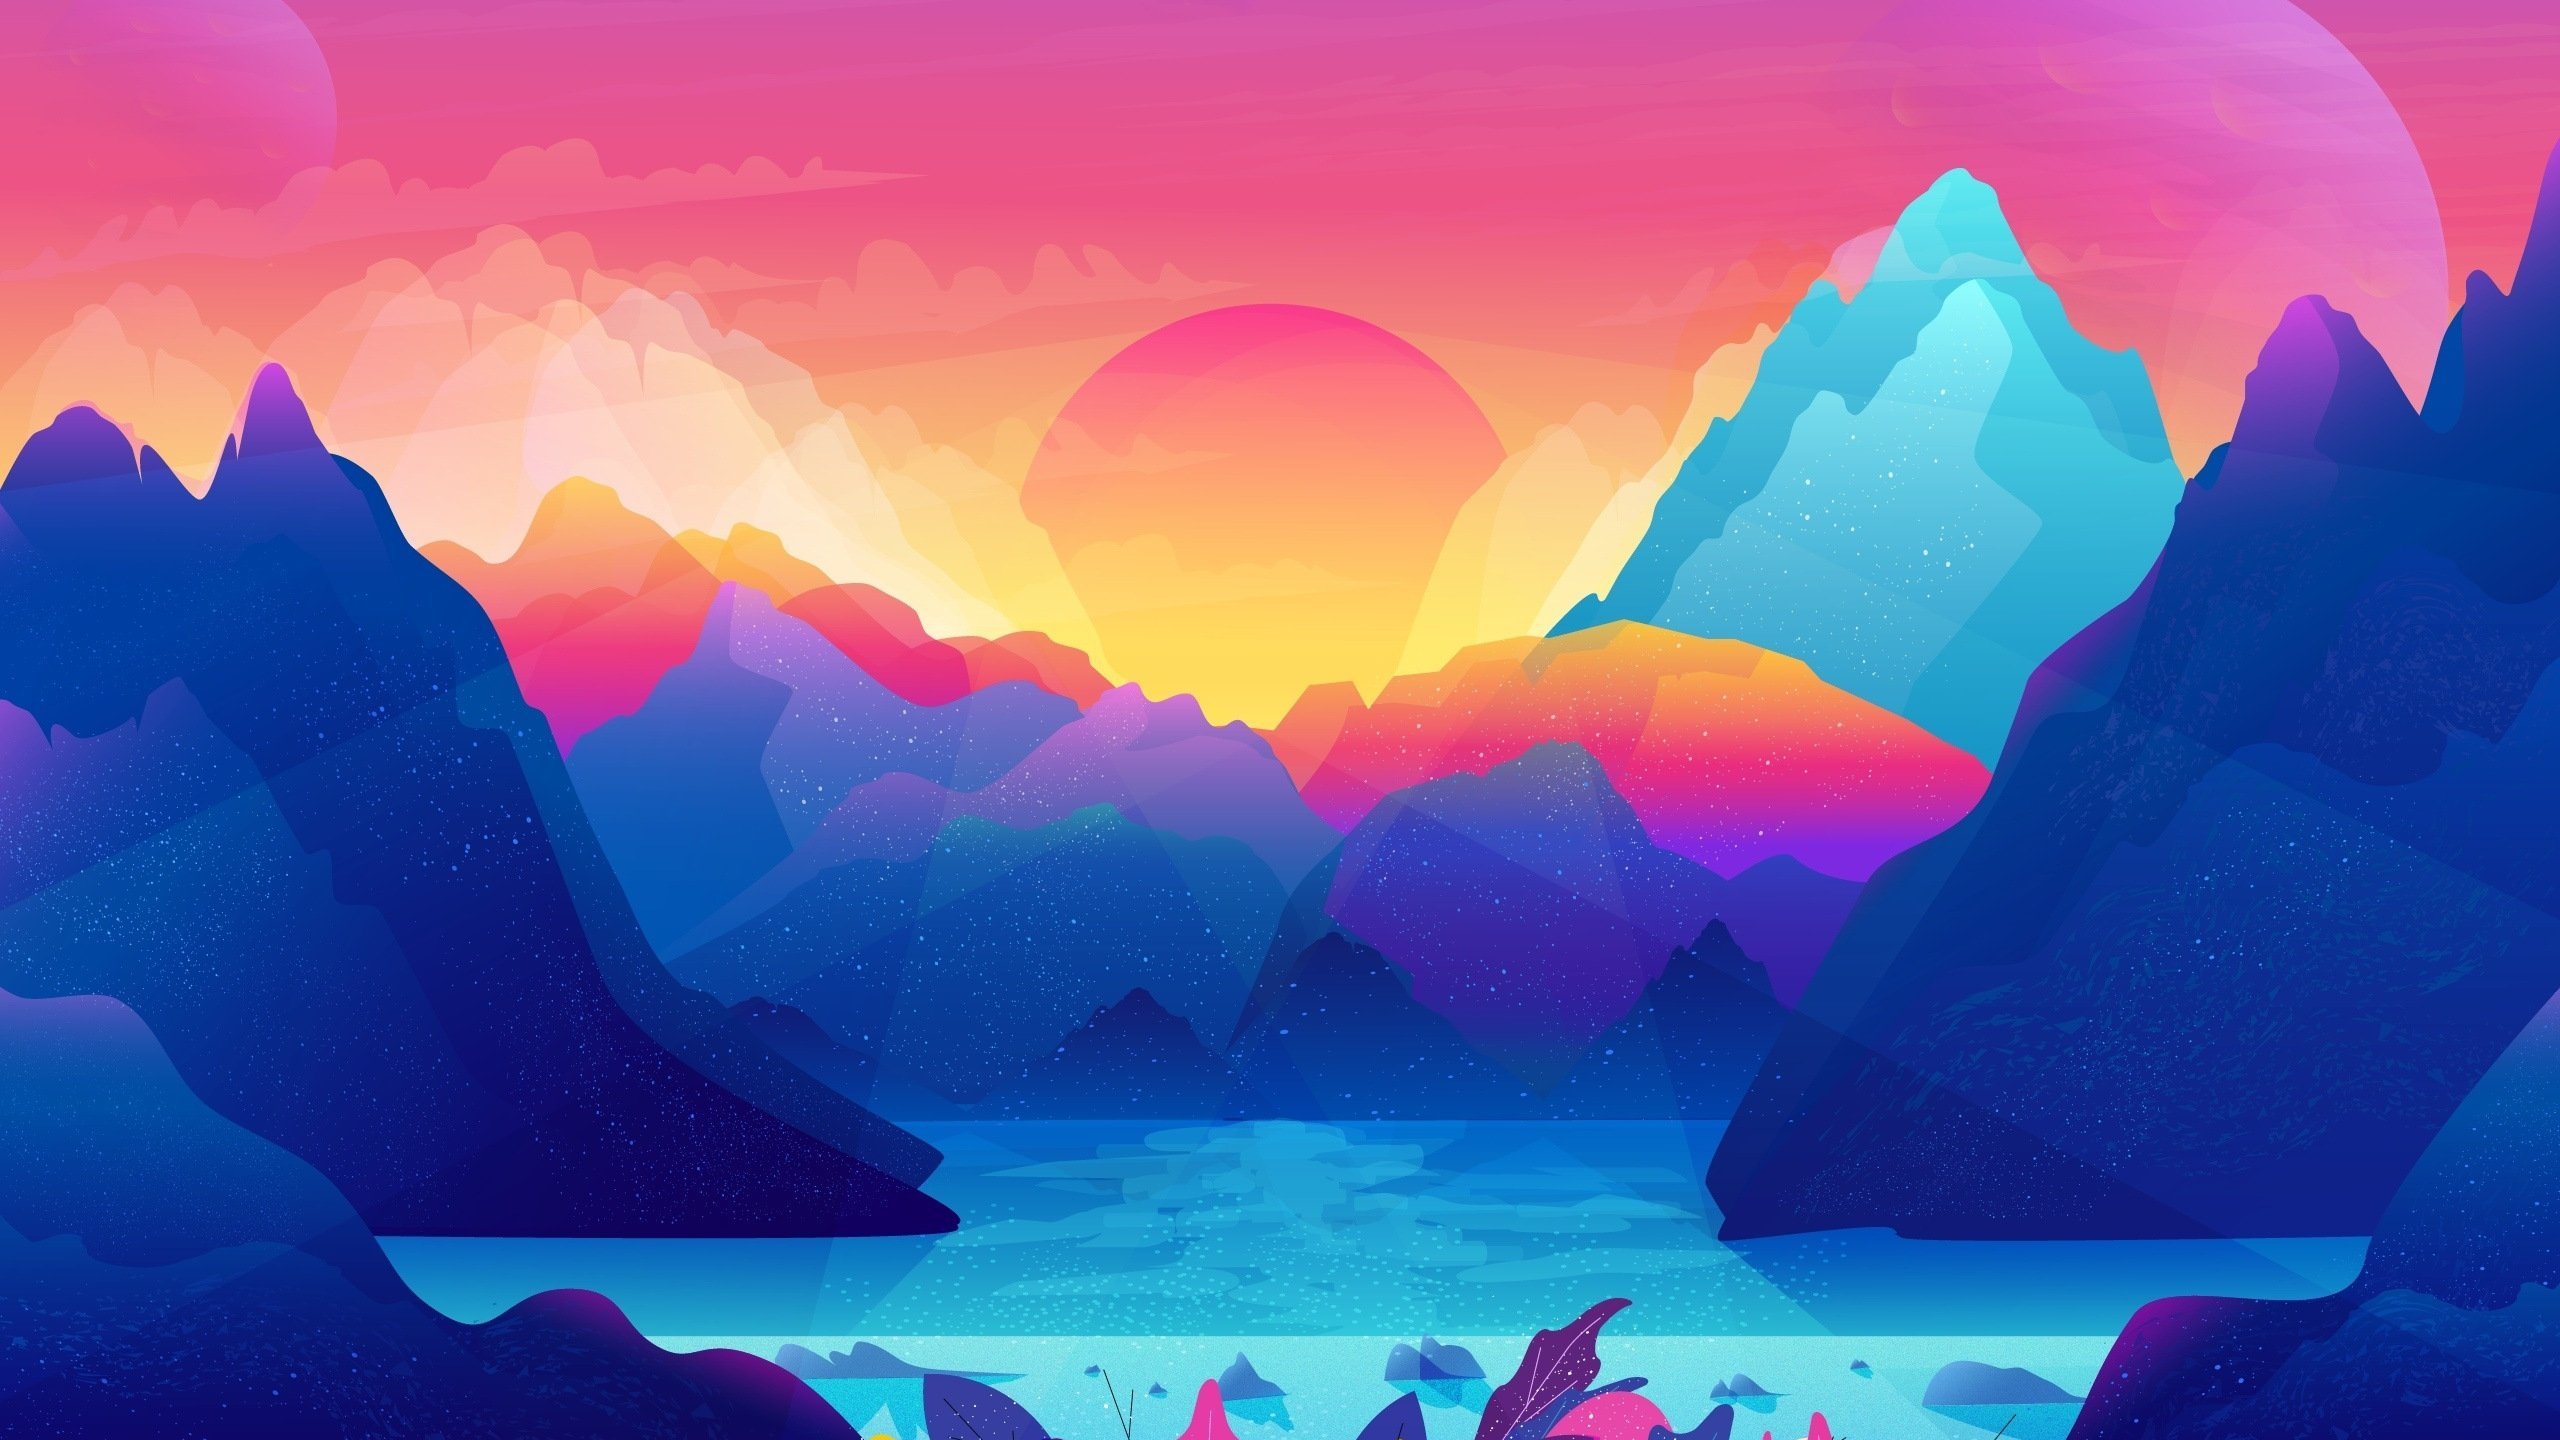 mountains sunset digital art hd wallpaper